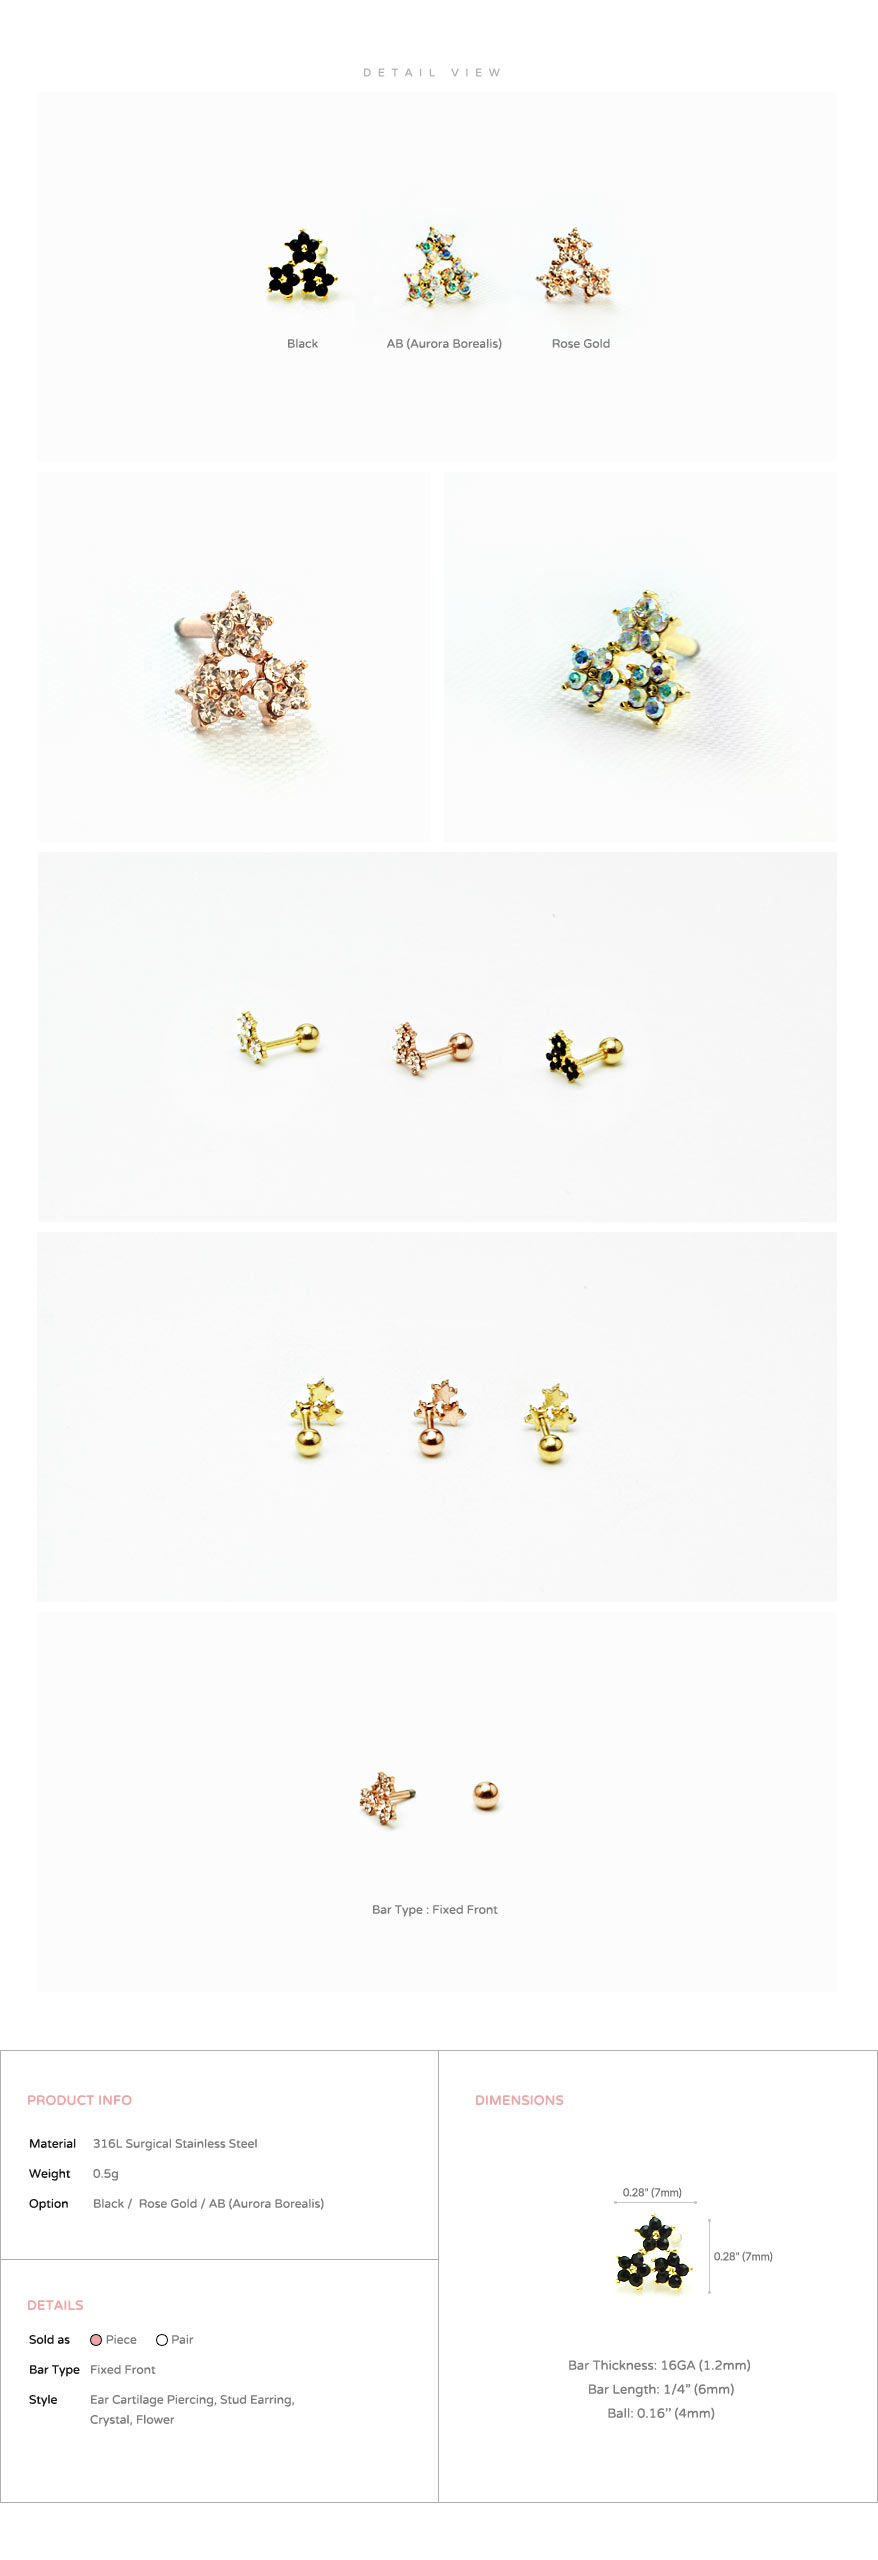 ear_studs_piercing_Cartilage_earrings_16g_316l_Surgical_Stainless_Steel_korean_asian_style_jewelry_barbell_AB_flower_crystal_6